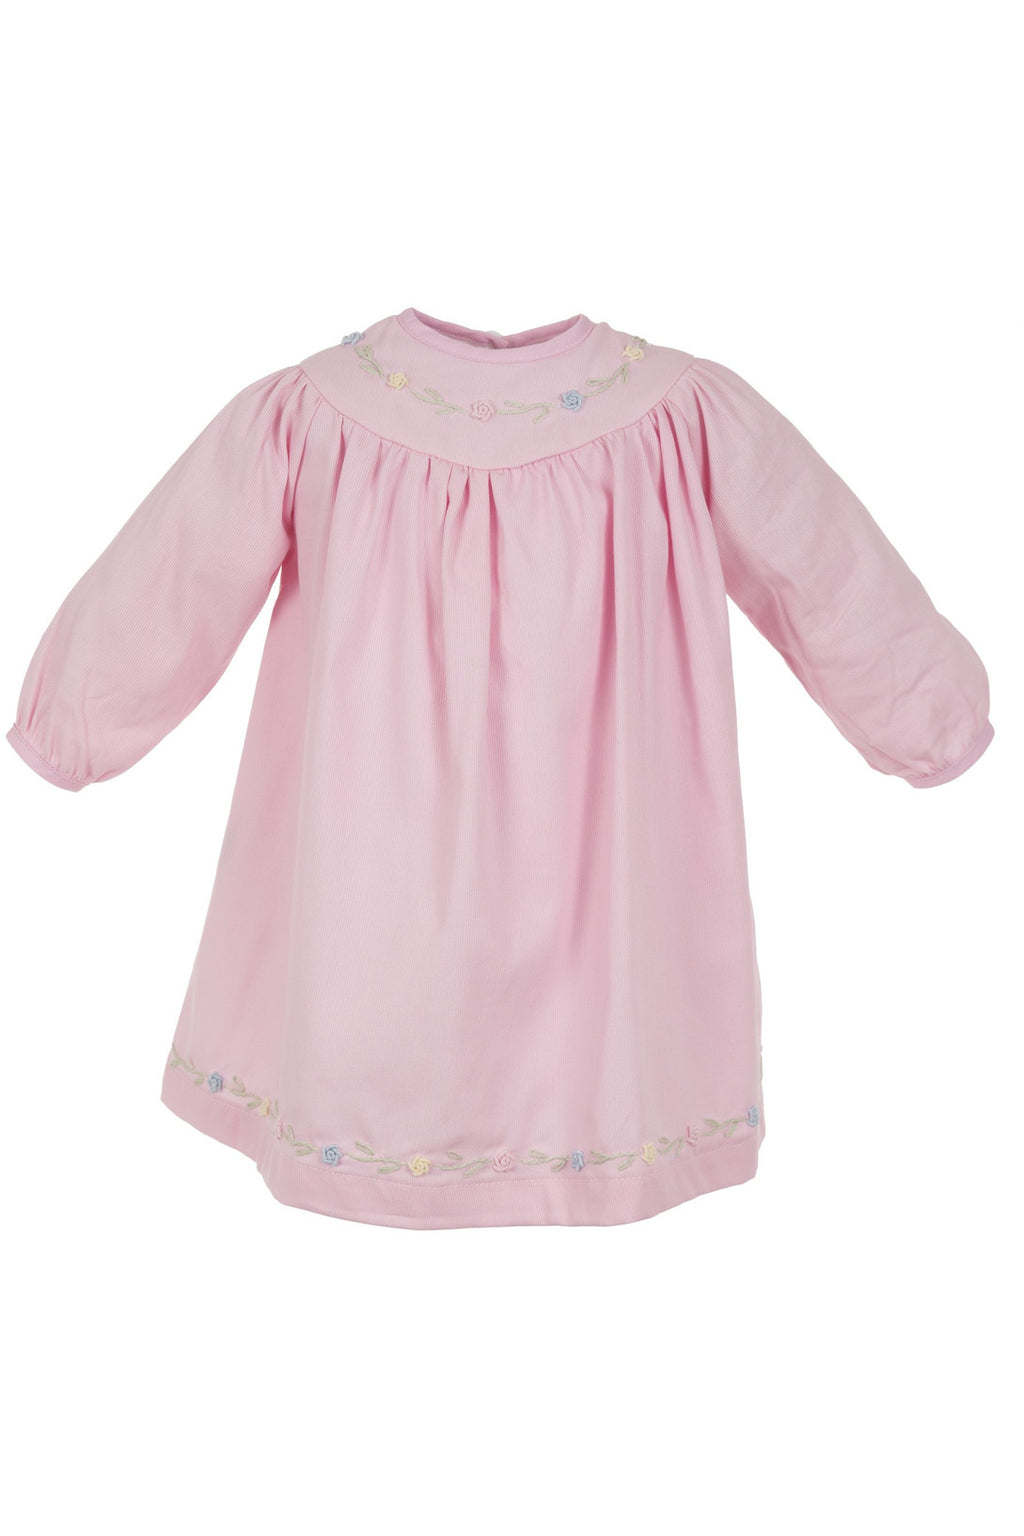 Baby Girl Hand Embroidered Floral Pink Bishop Dress [product_tags] dress- Carriage Boutique